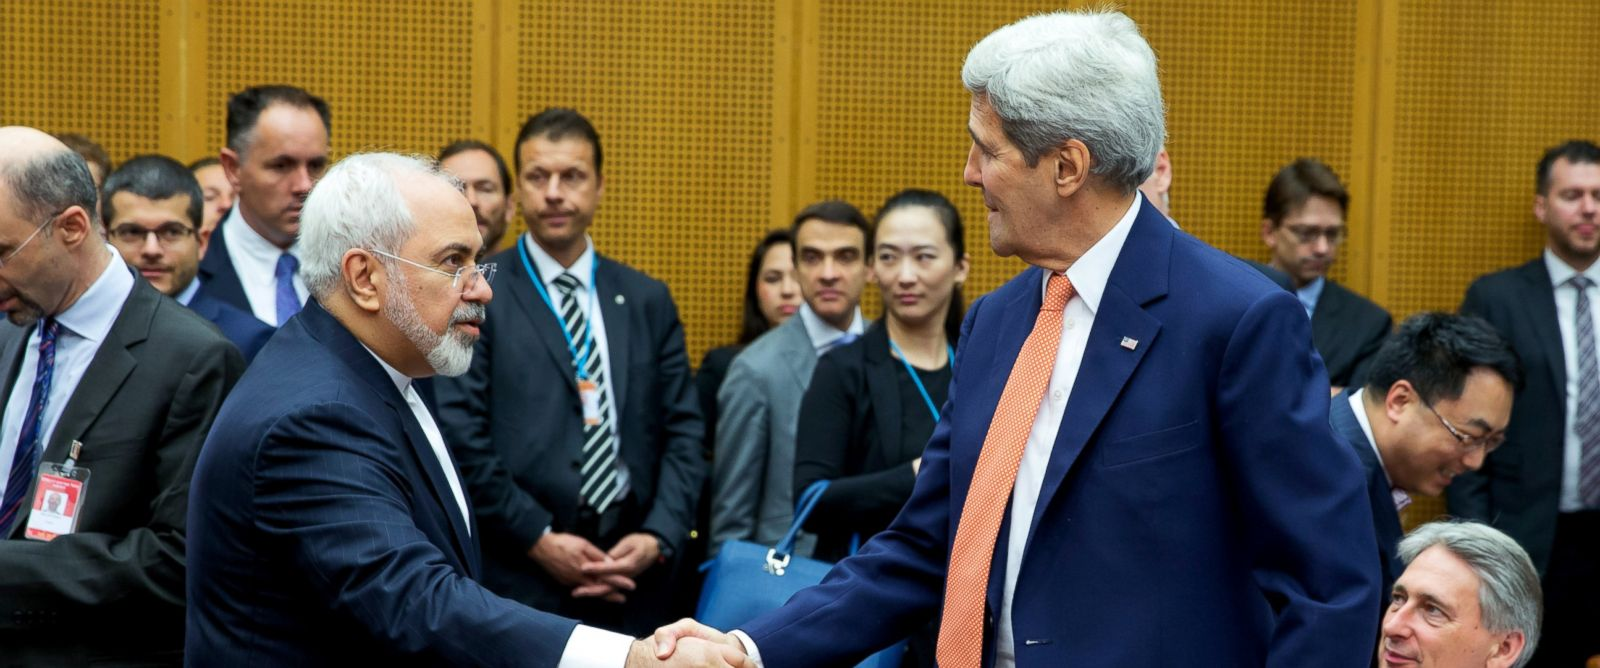 PHOTO: Foreign Minister of Iran, Mohammad Javad Zarif shakes hands with U.S. Secretary of State John Kerry, July 14, 2015, in Vienna.